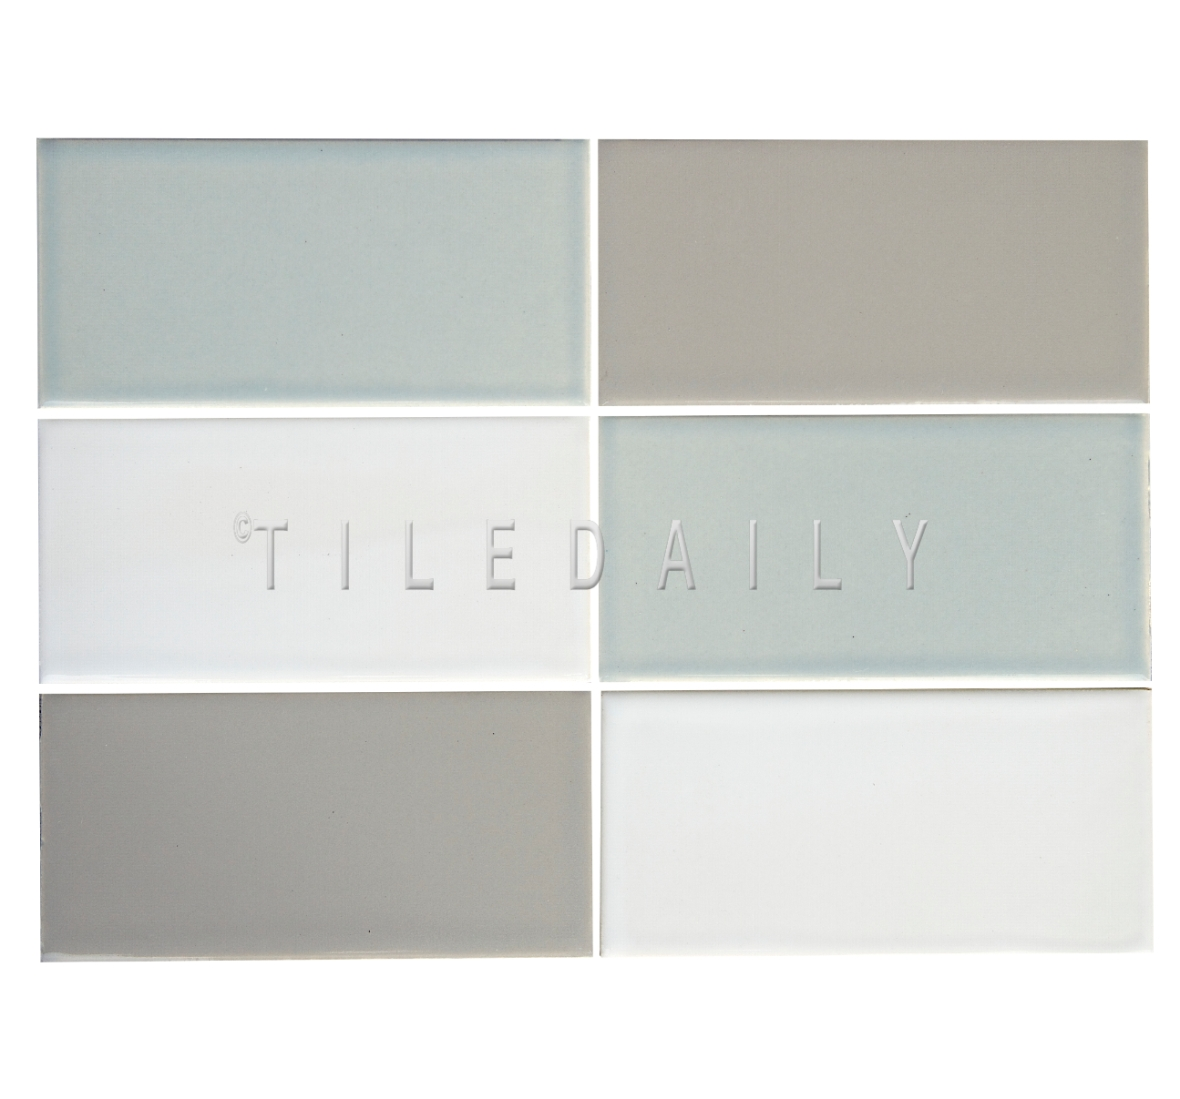 3x6 Cottage Series Ceramic Subway Tile, Ice Blue Gray and White. Available at TileDaily